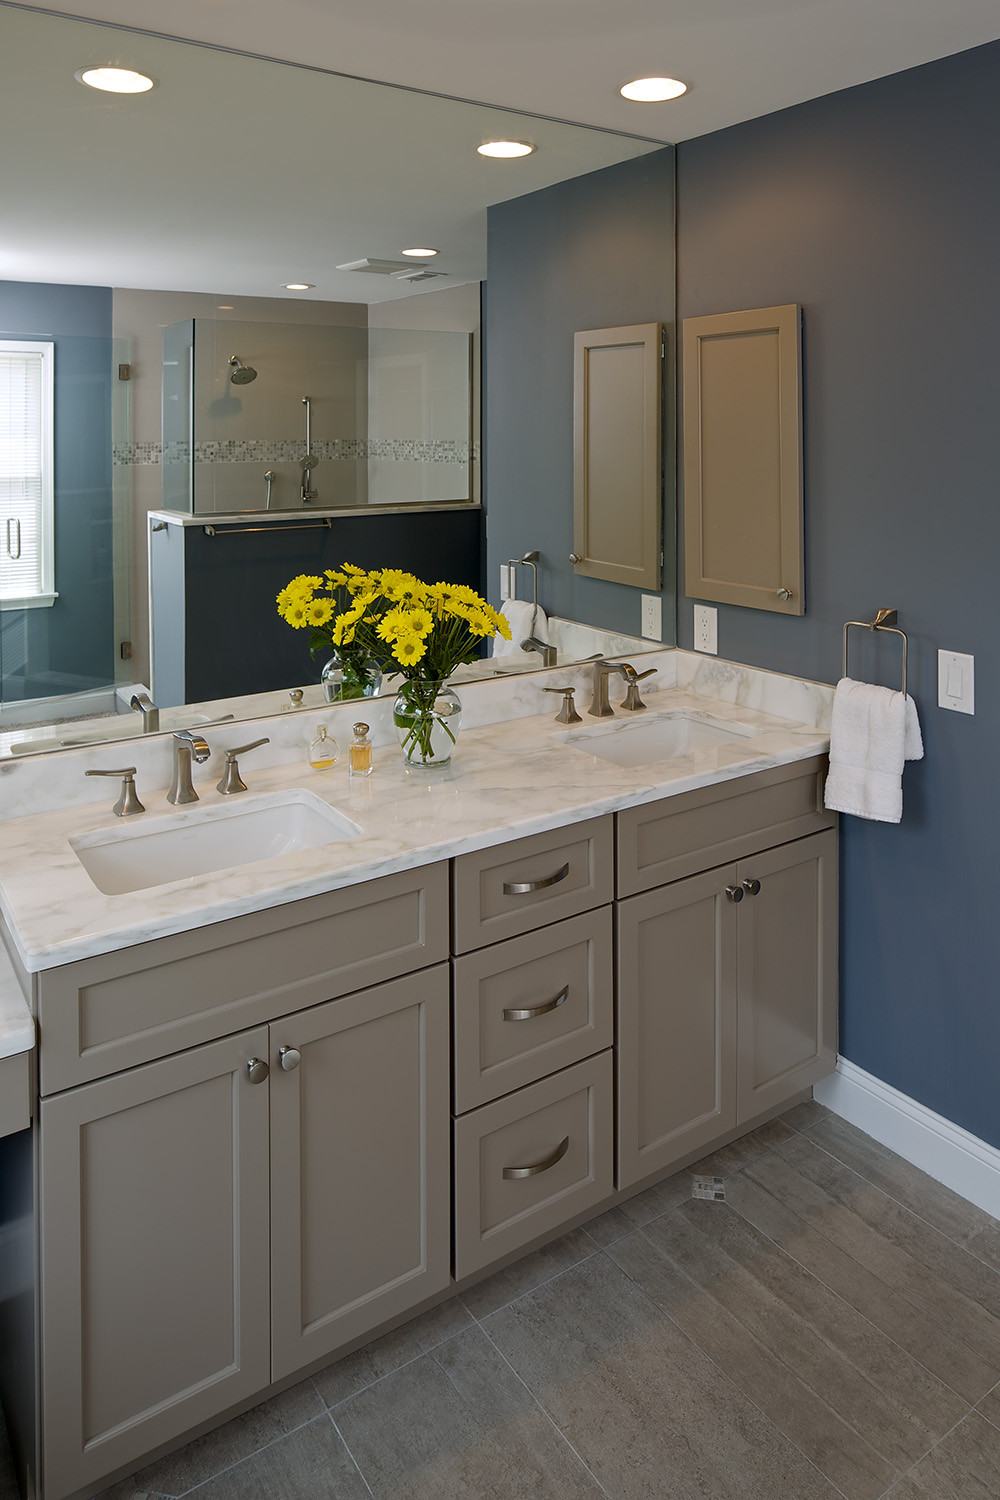 Bathrooms With Painted Wood